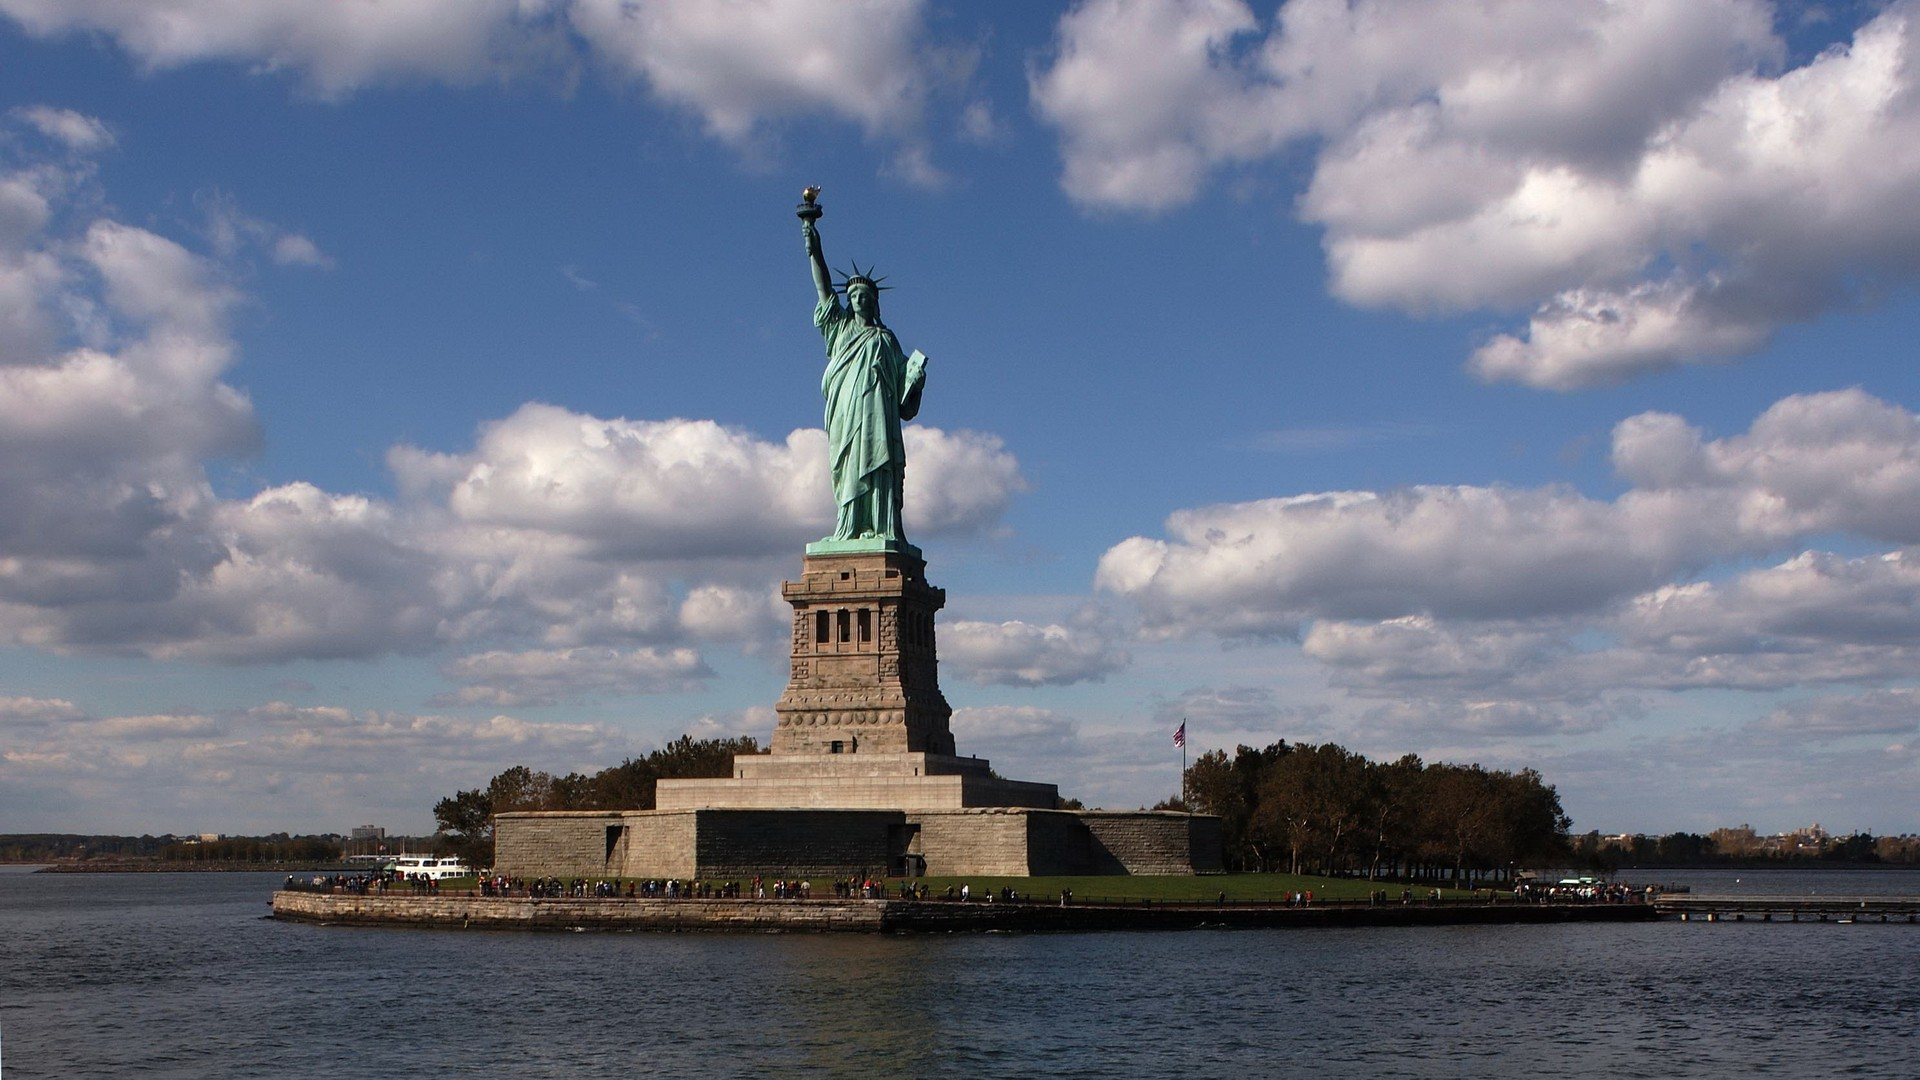 Estatua de la Libertad New York - 1920x1080